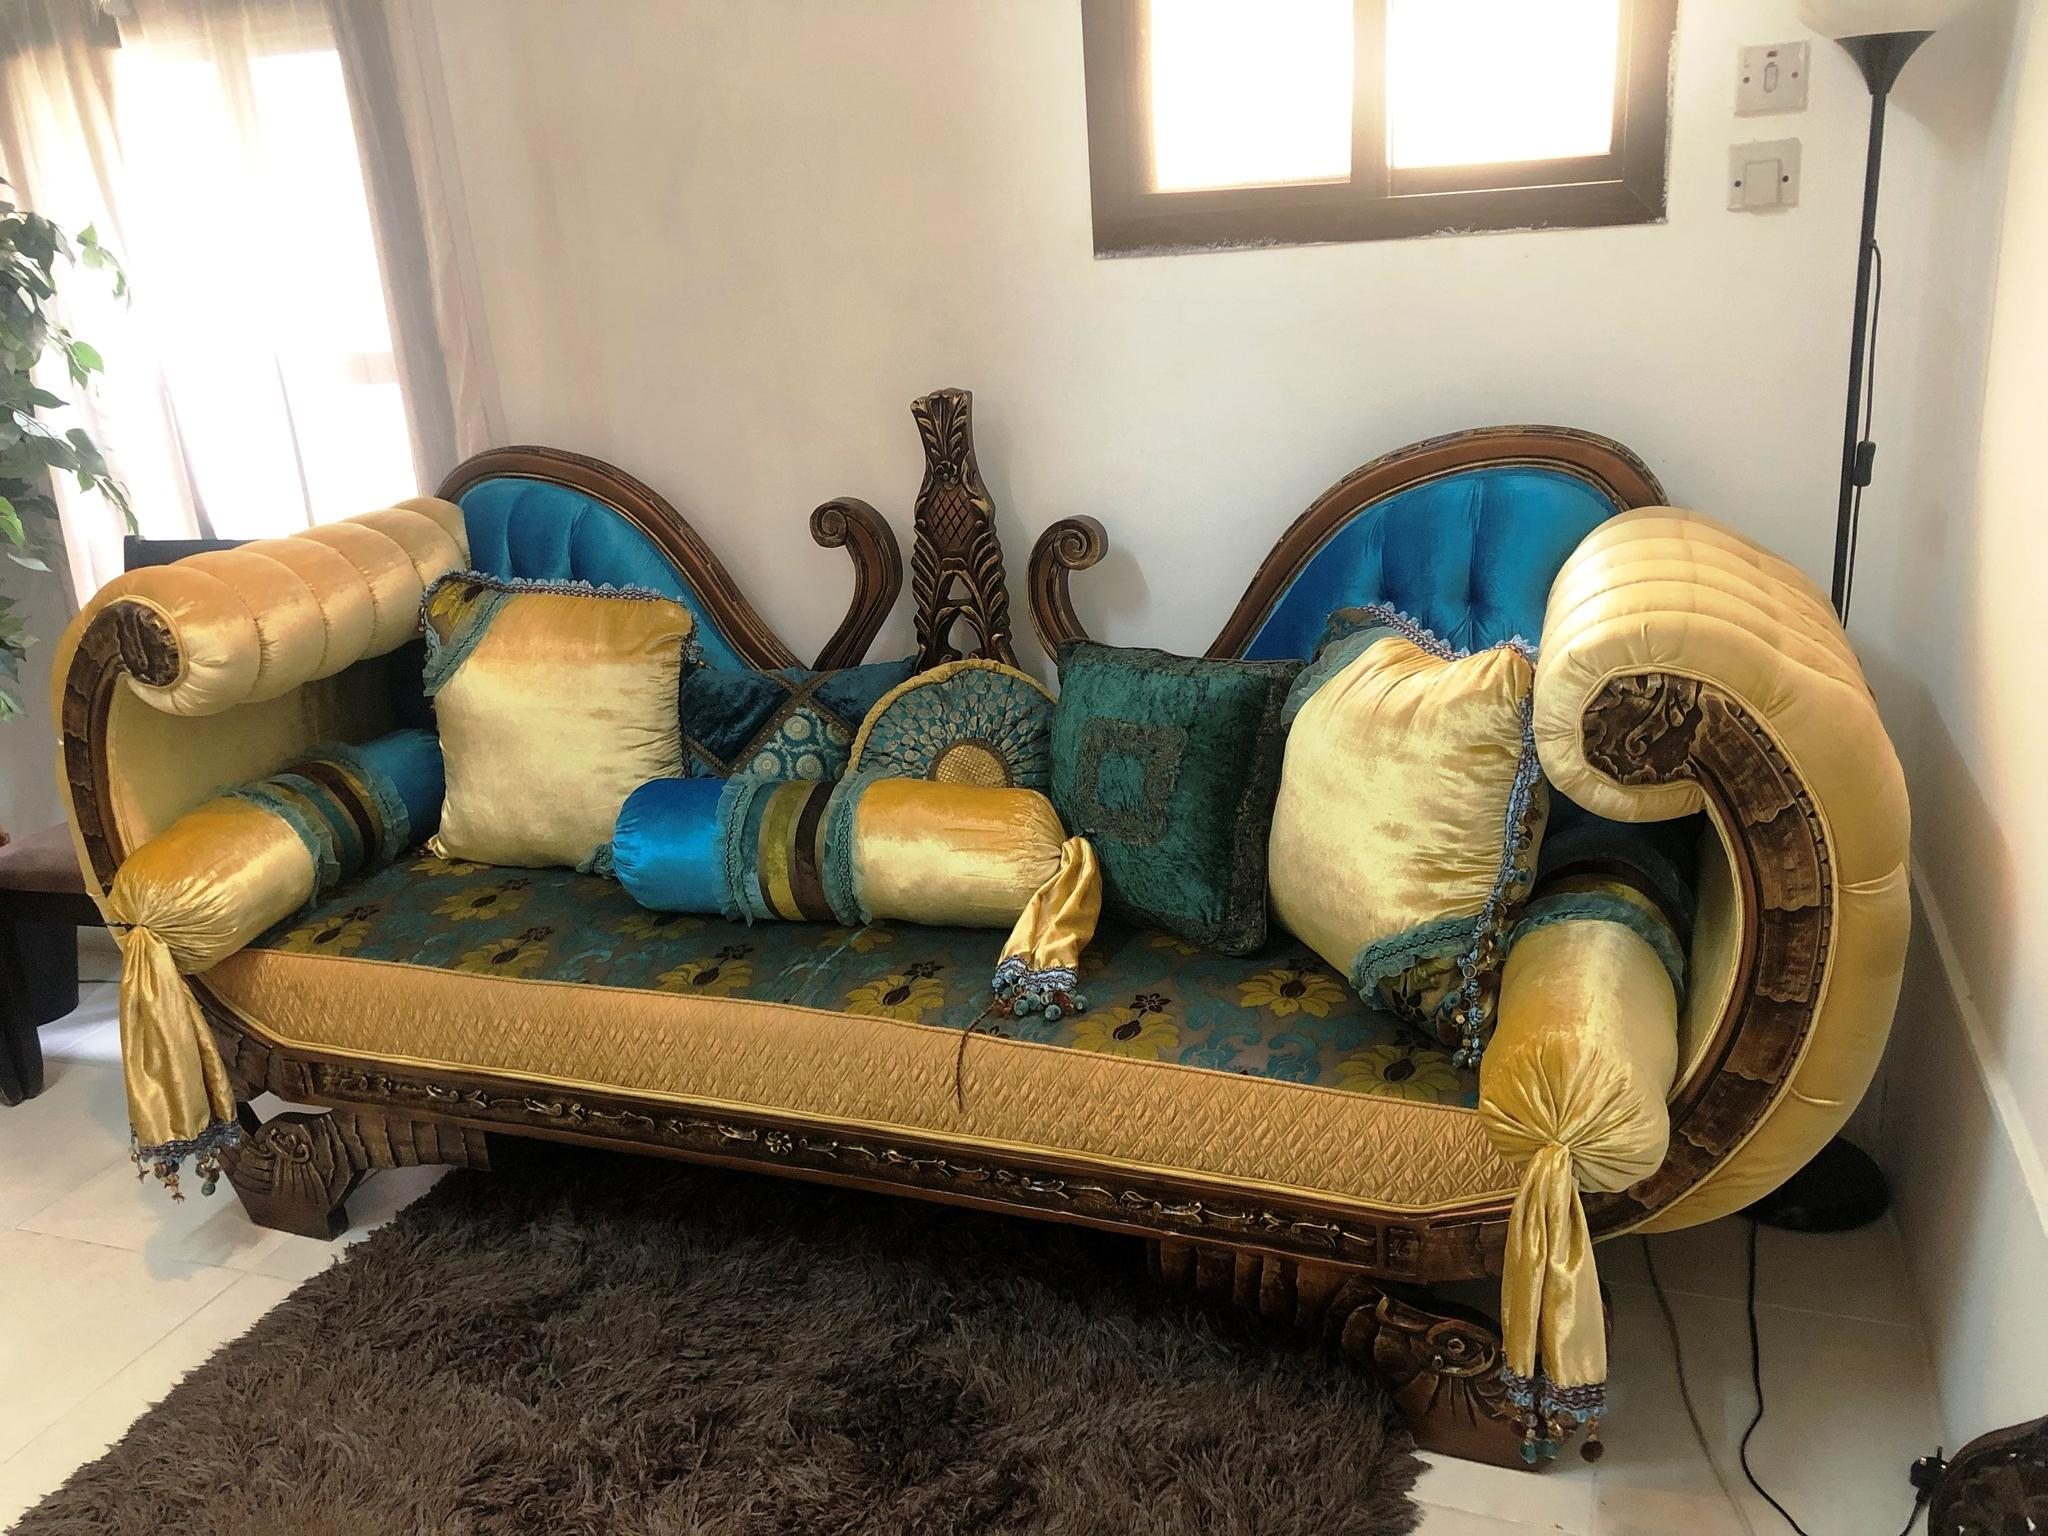 Used Items for sale in Doha Qatar   Qatar Living Items